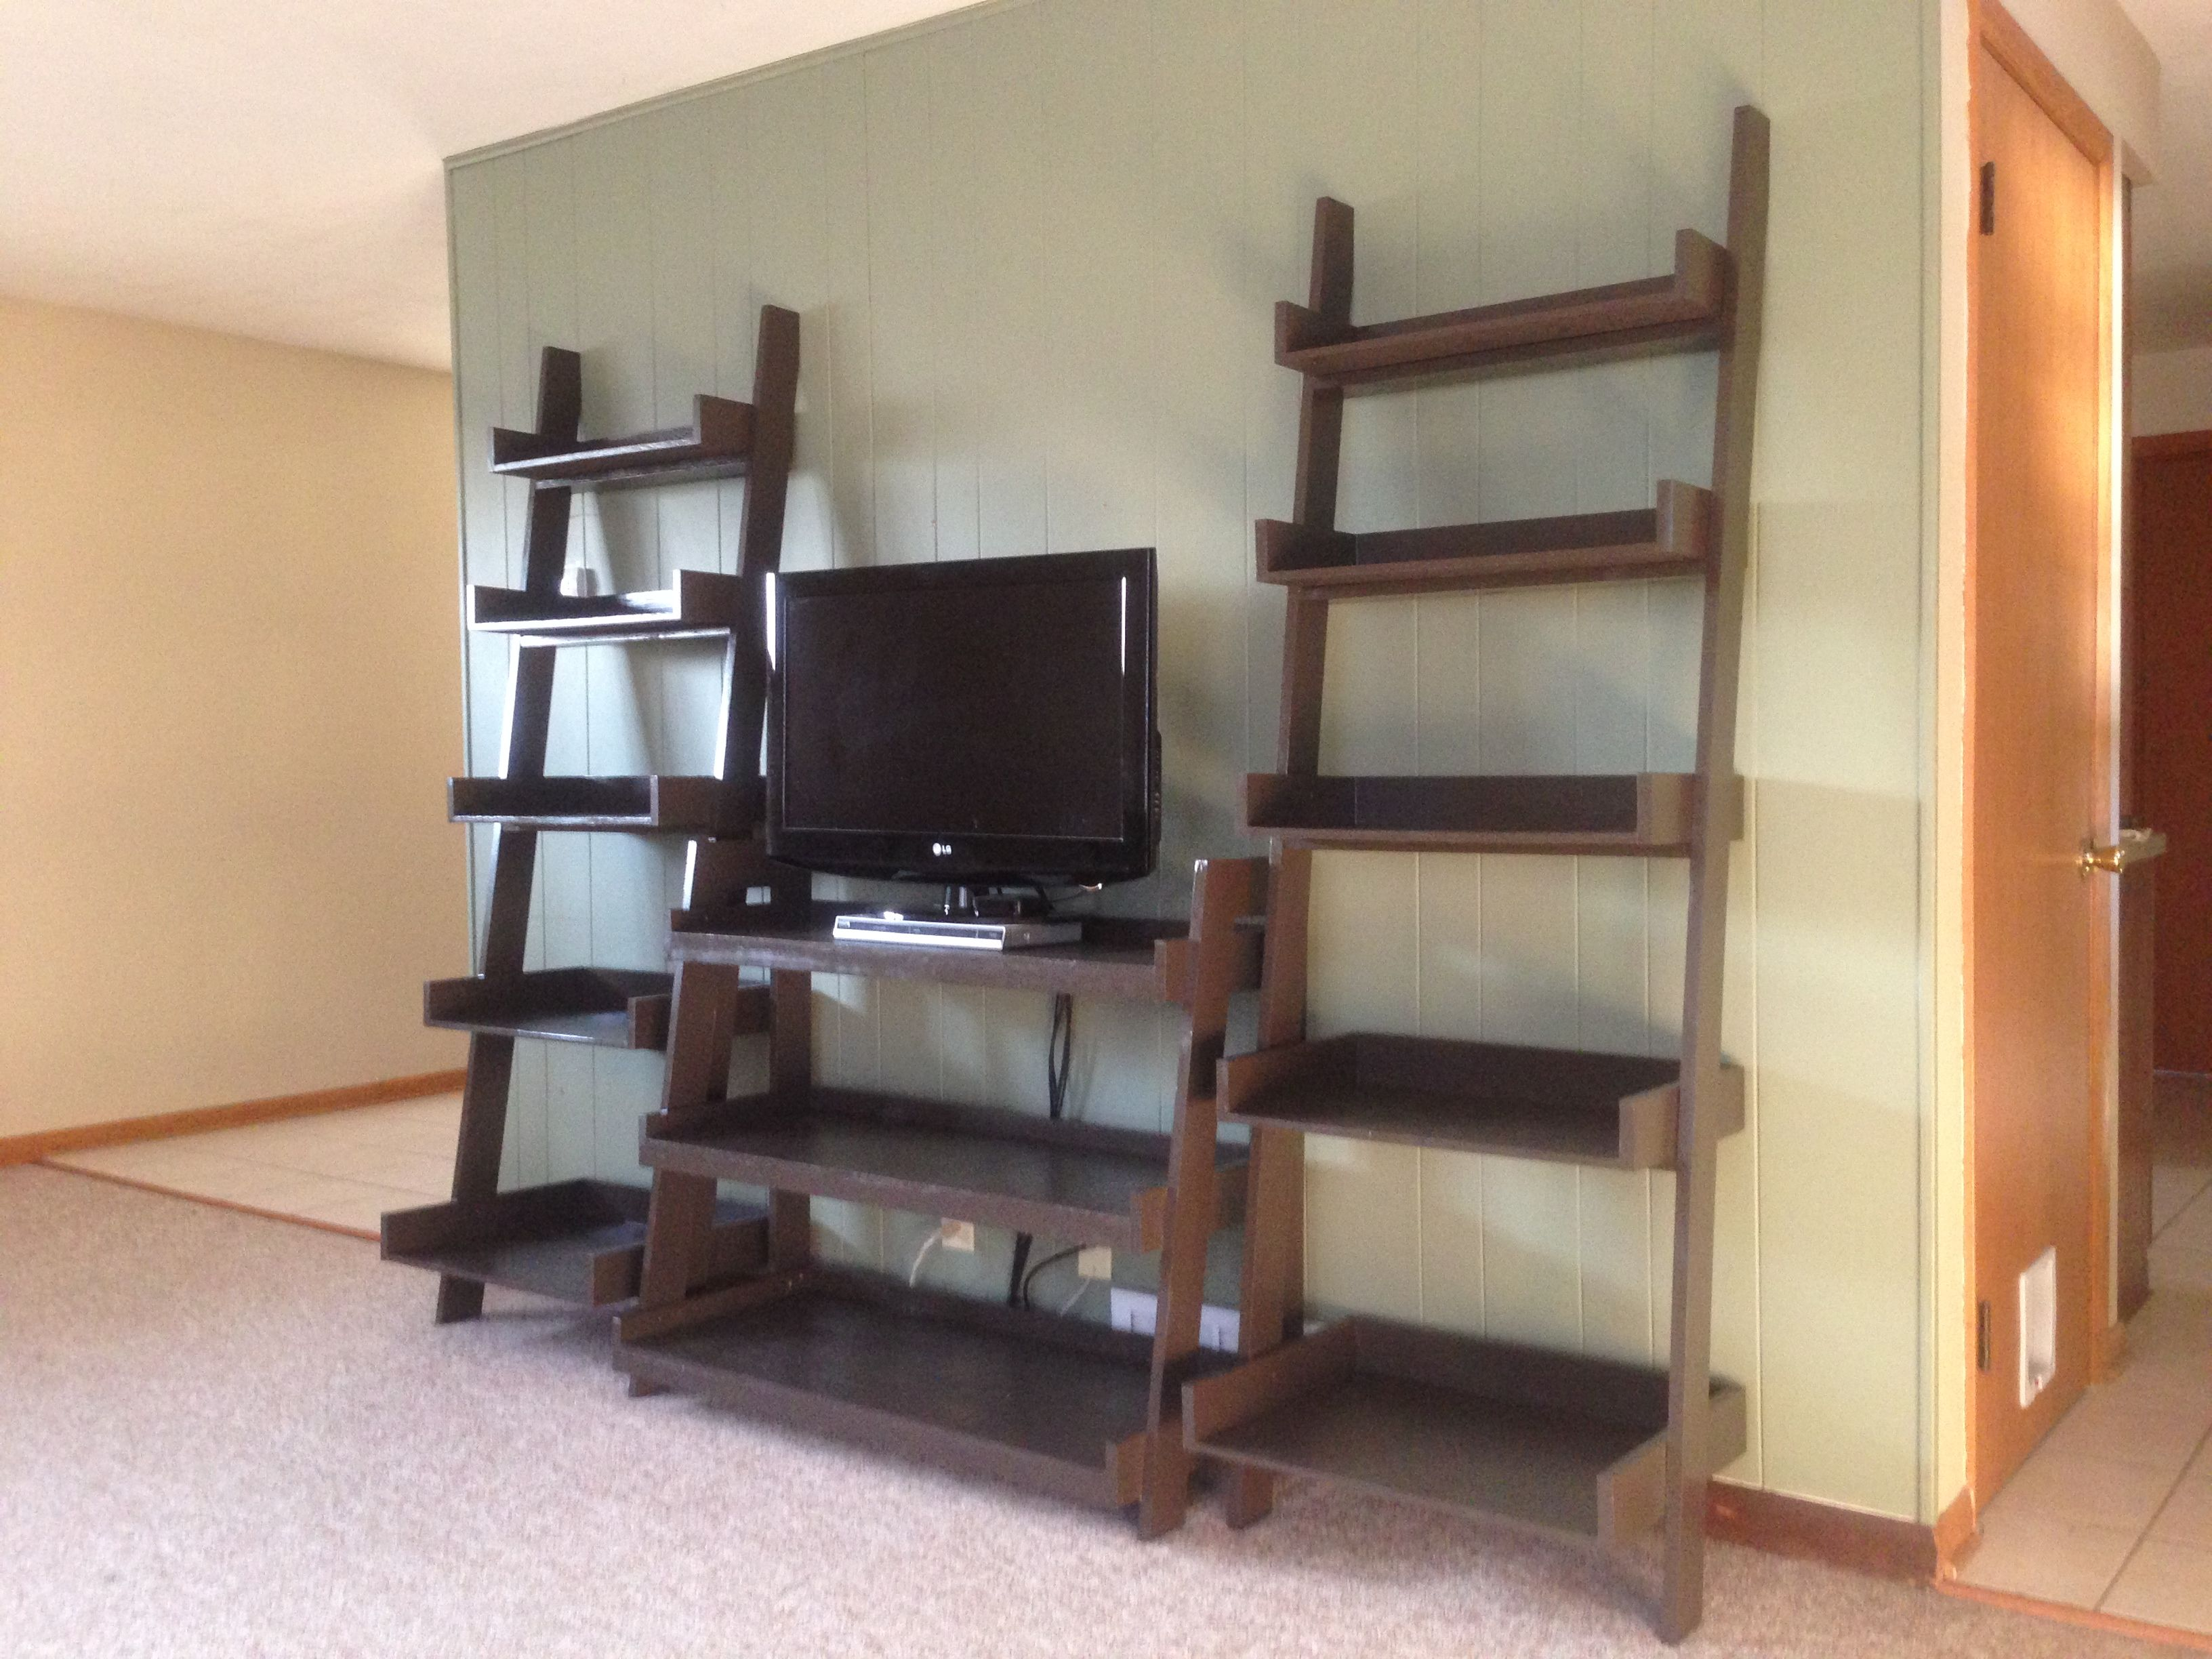 Finally finished my Leaning Ladder TV Stand and Shelves ...